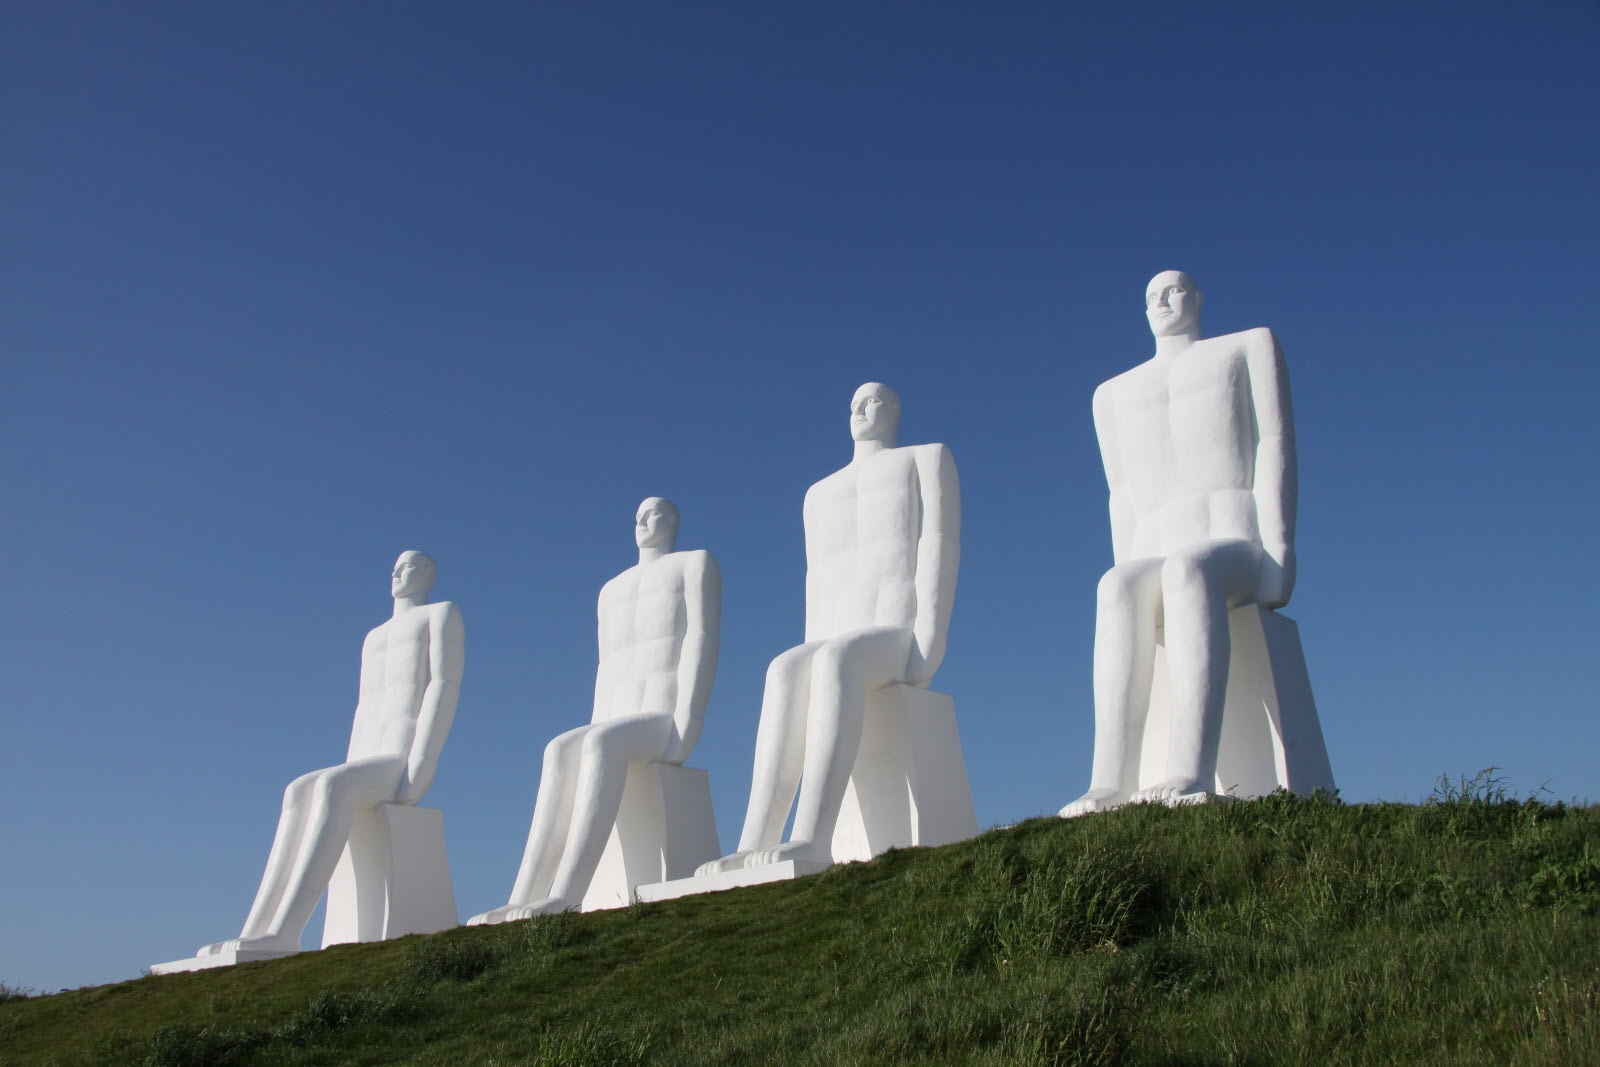 Sculptures By The Sea i Esbjerg